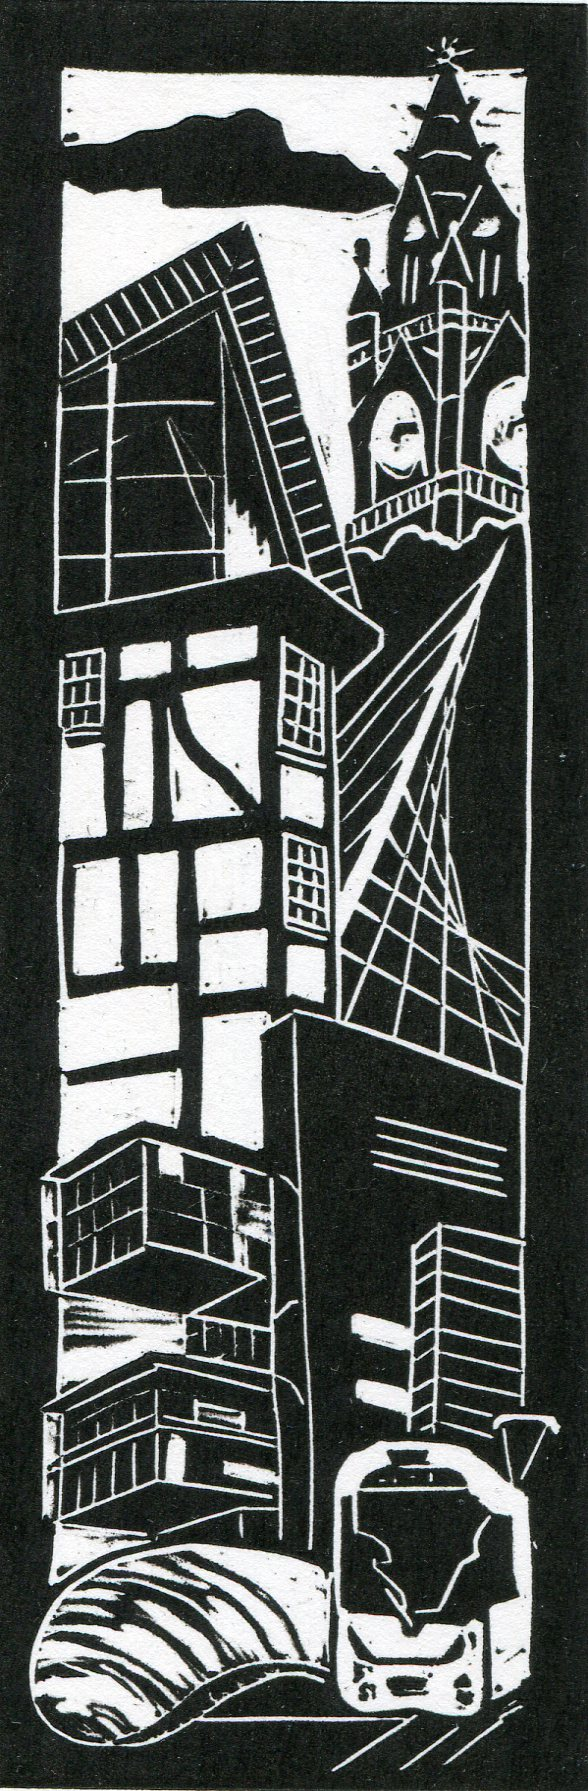 Image of 'Manchester Old & New III', an original linocut by artist Carolyn Murphy